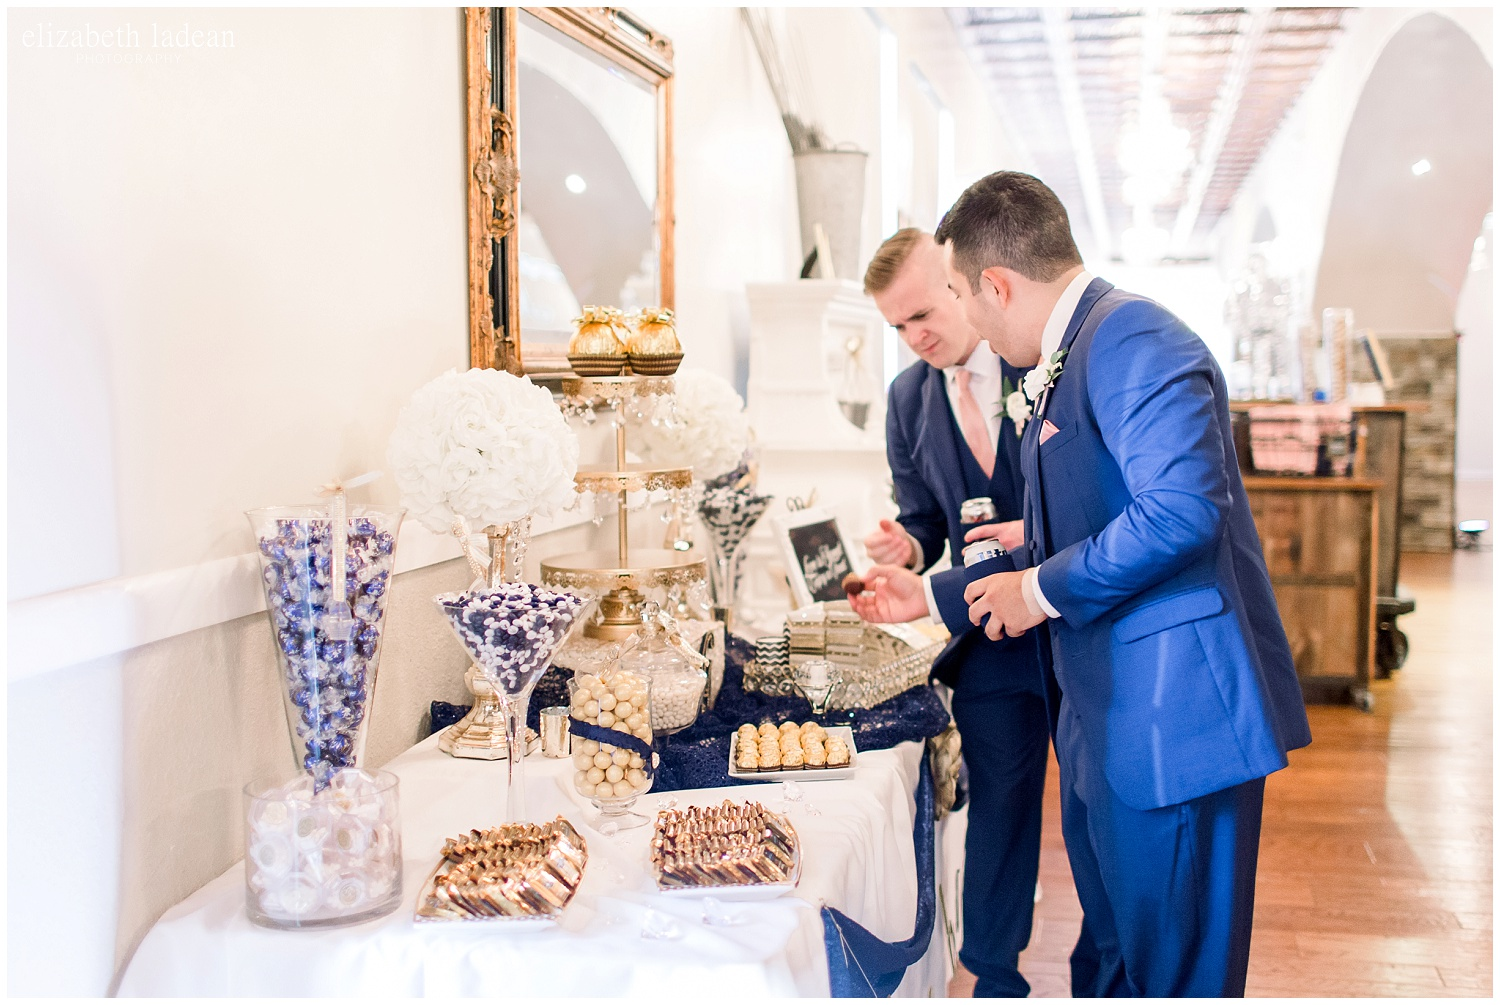 -behind-the-scenes-of-a-wedding-photographer-2018-elizabeth-ladean-photography-photo_3498.jpg